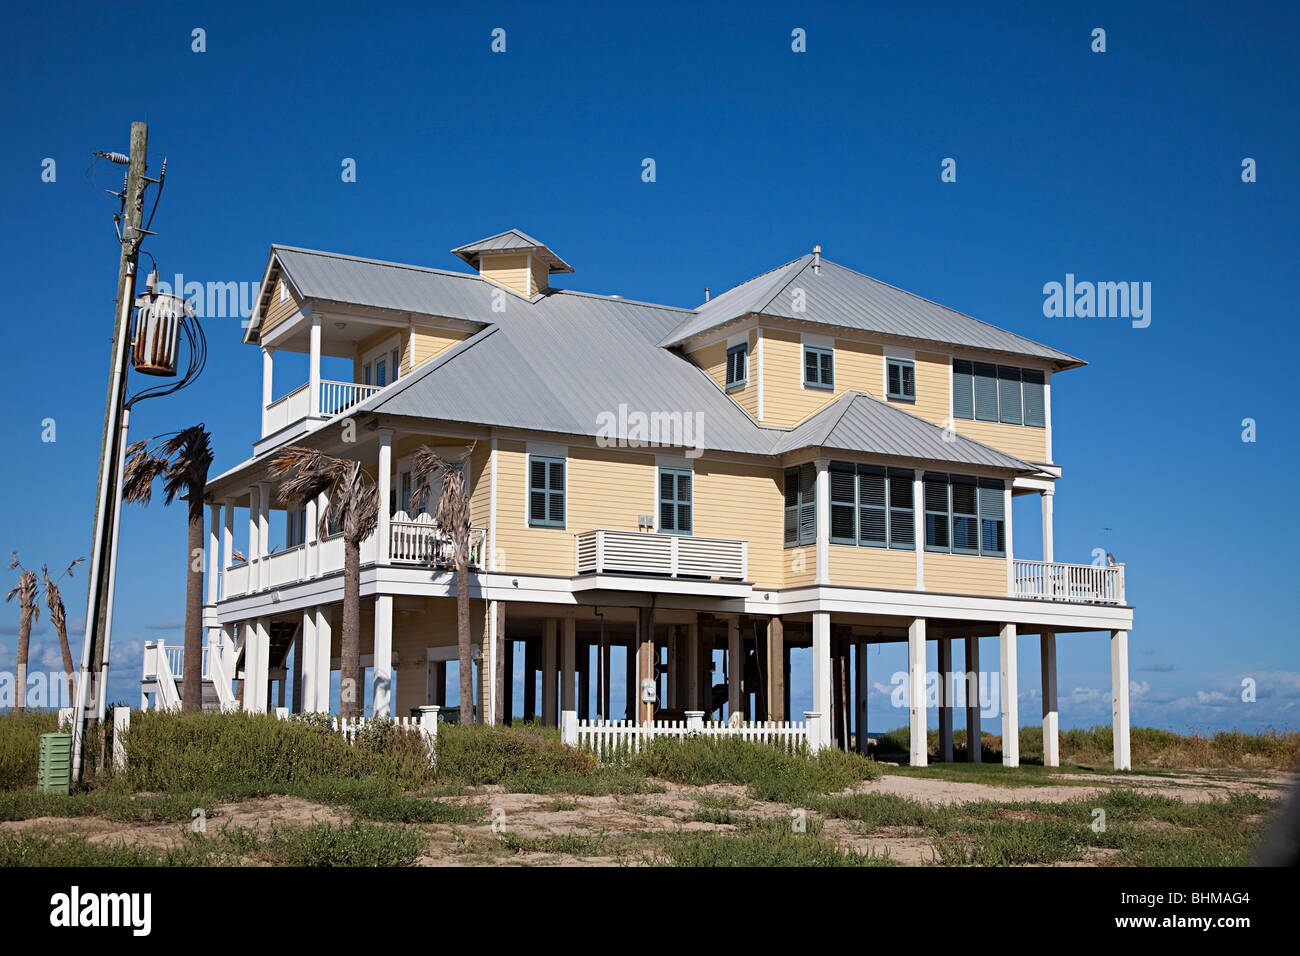 Wooden house on stilts on beach front galveston texas usa for Beach house plans on pylons